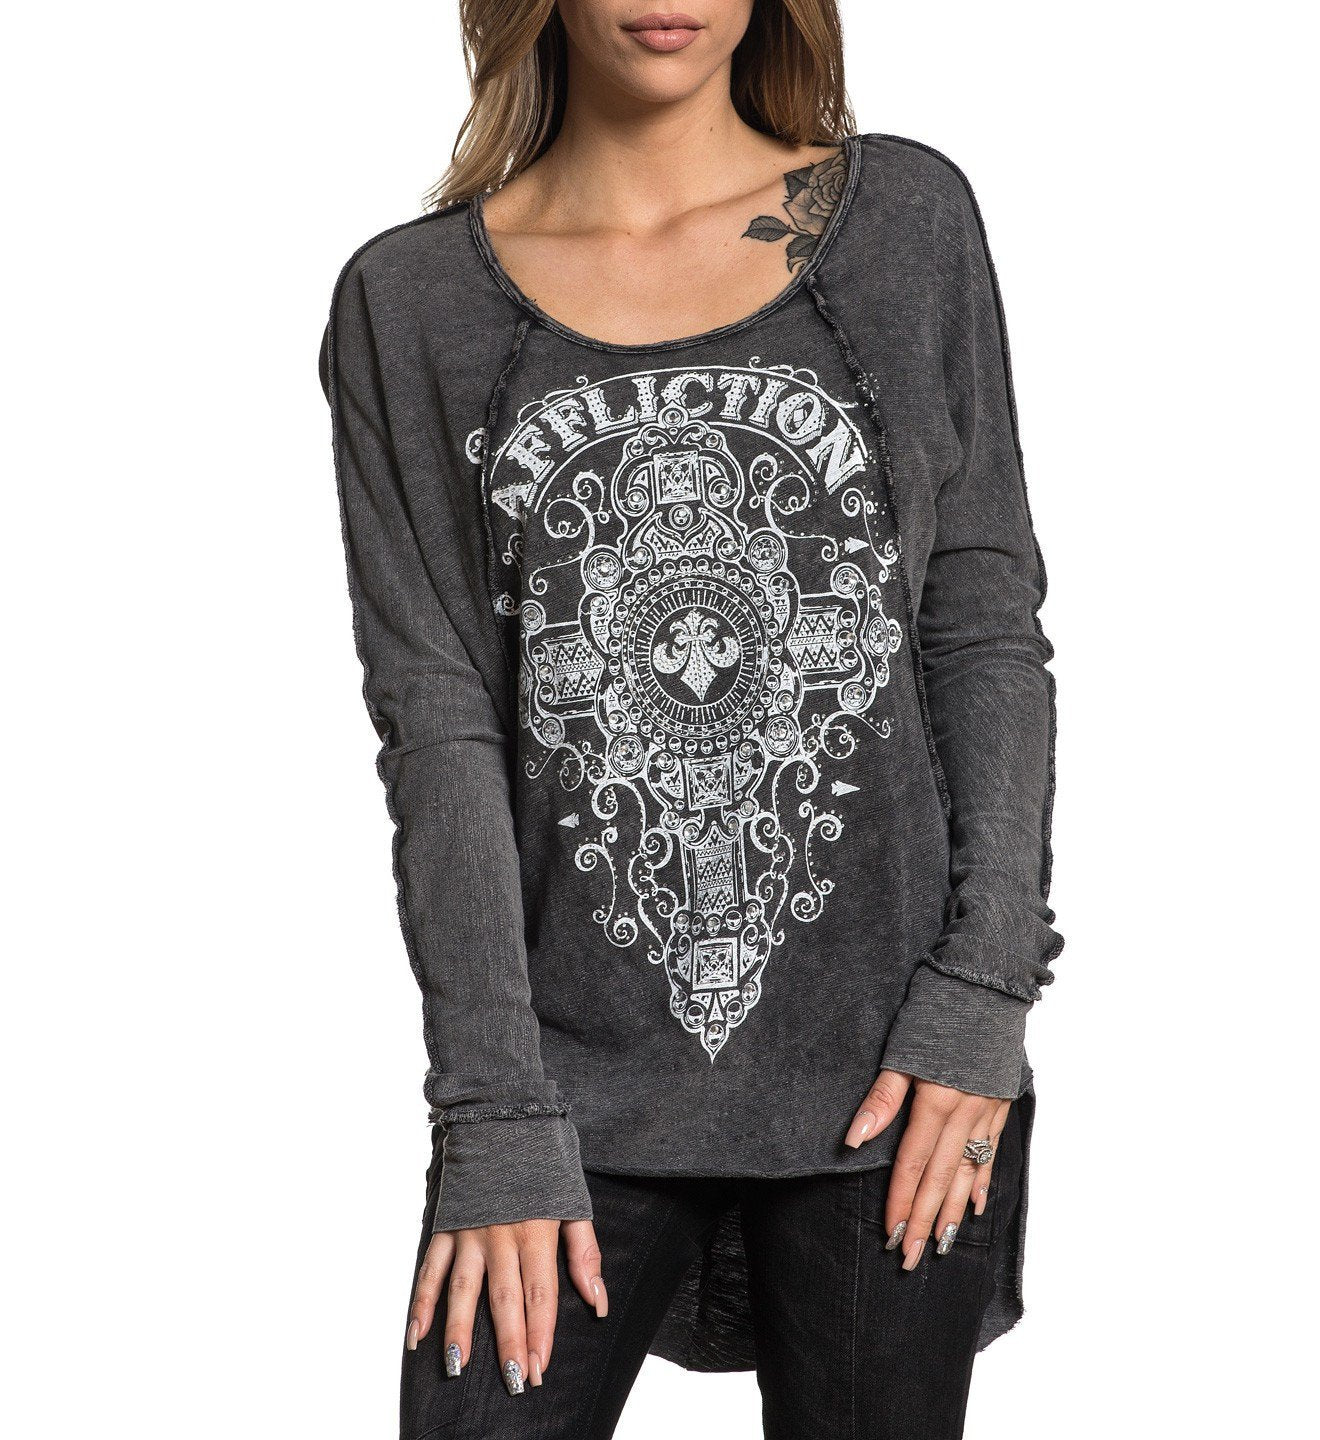 Marquis - Womens Long Sleeve Tees - Affliction Clothing